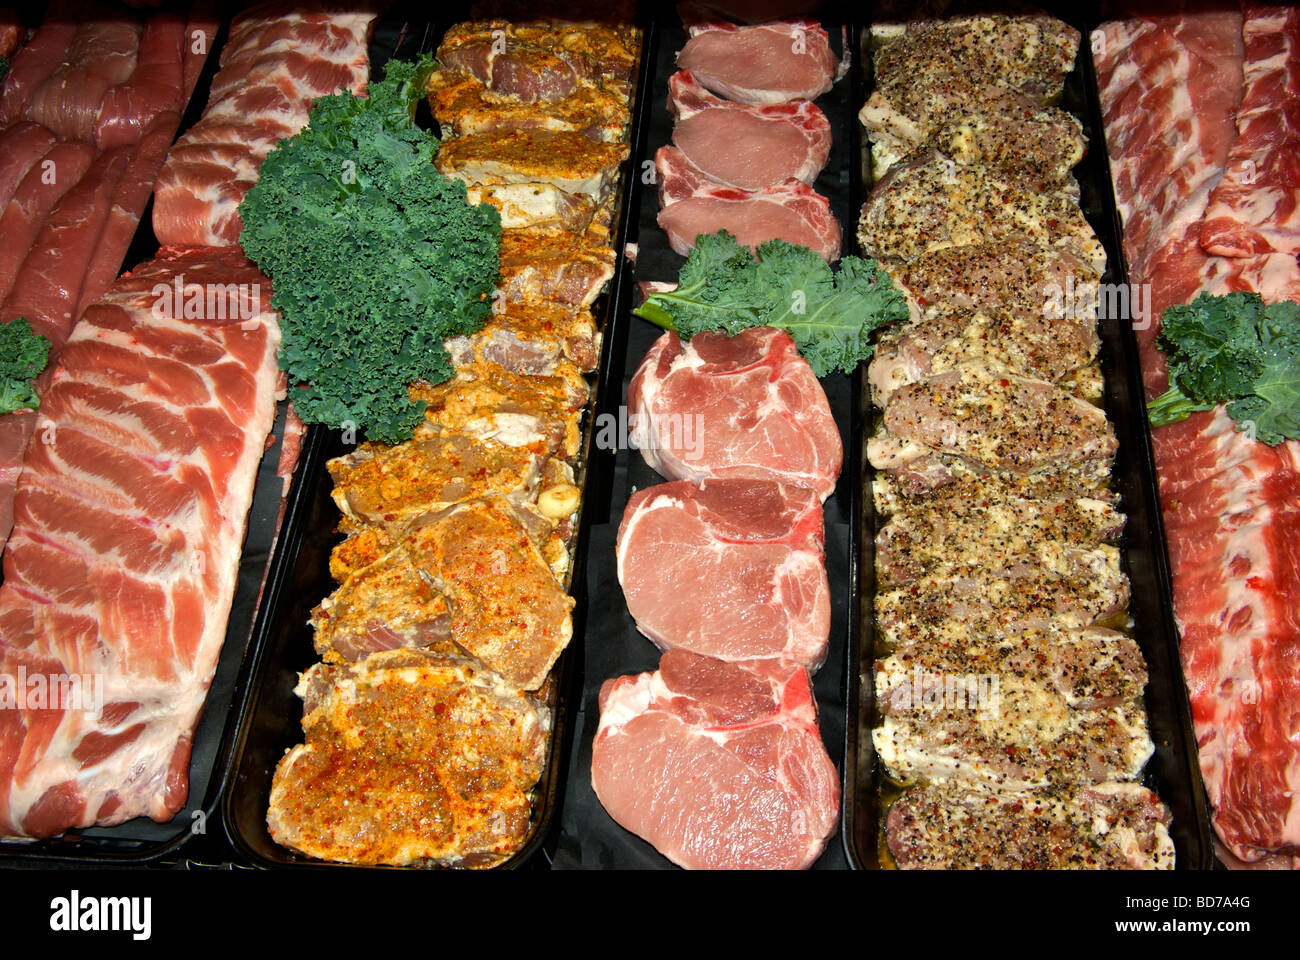 Meat Display Cooler Case With Raw Uncooked Pork Products